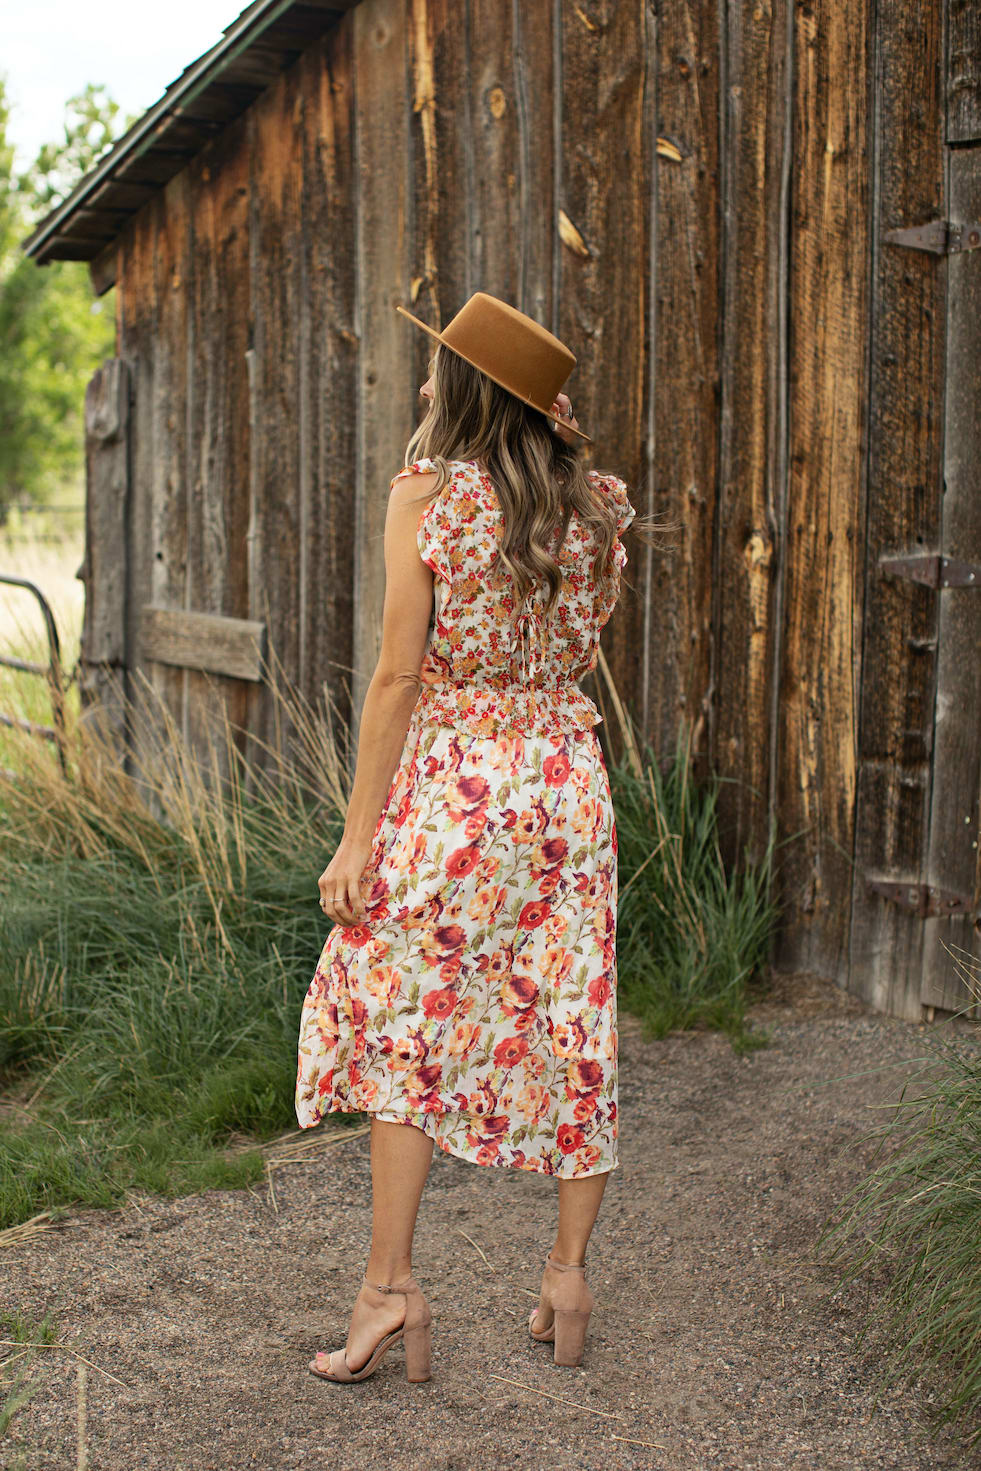 Mixed Floral With Crisscross Back - Ivory/Orange - Back